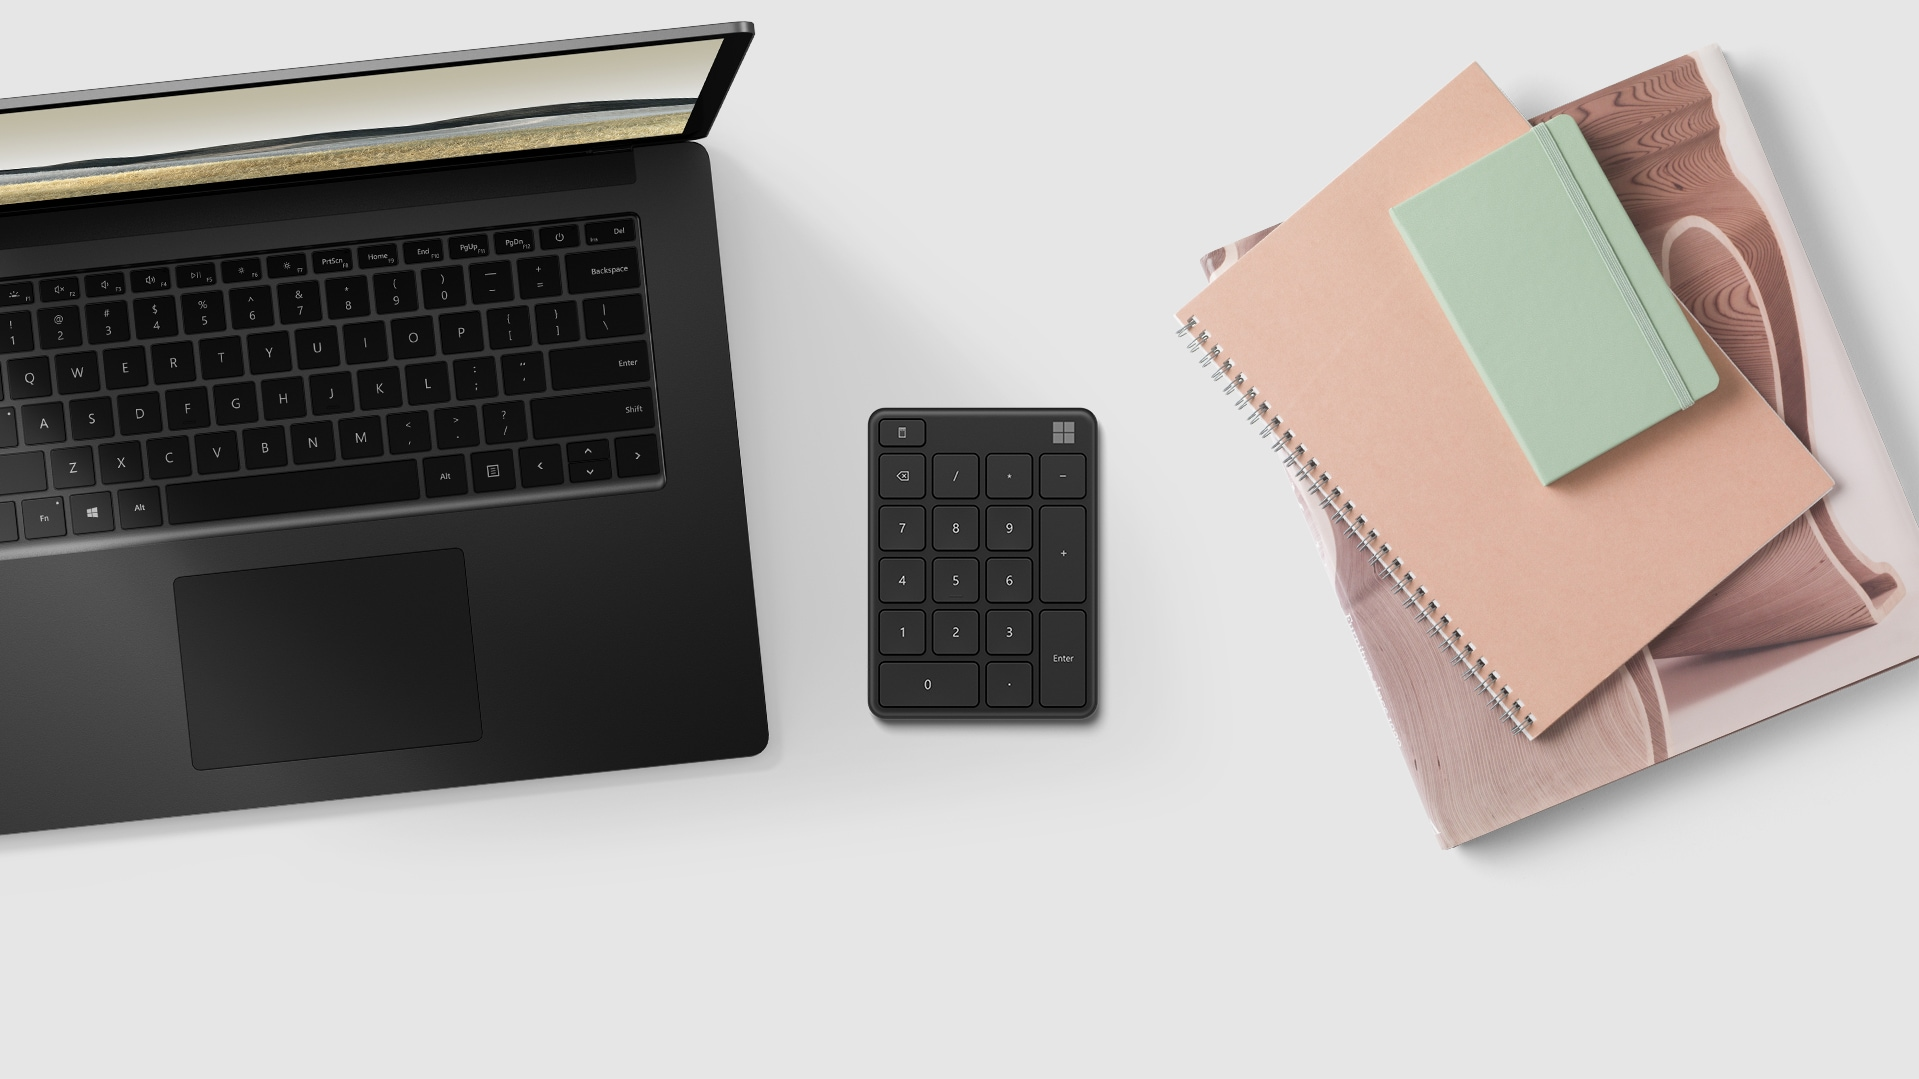 A Microsoft Number Pad next to a computer and day planner.